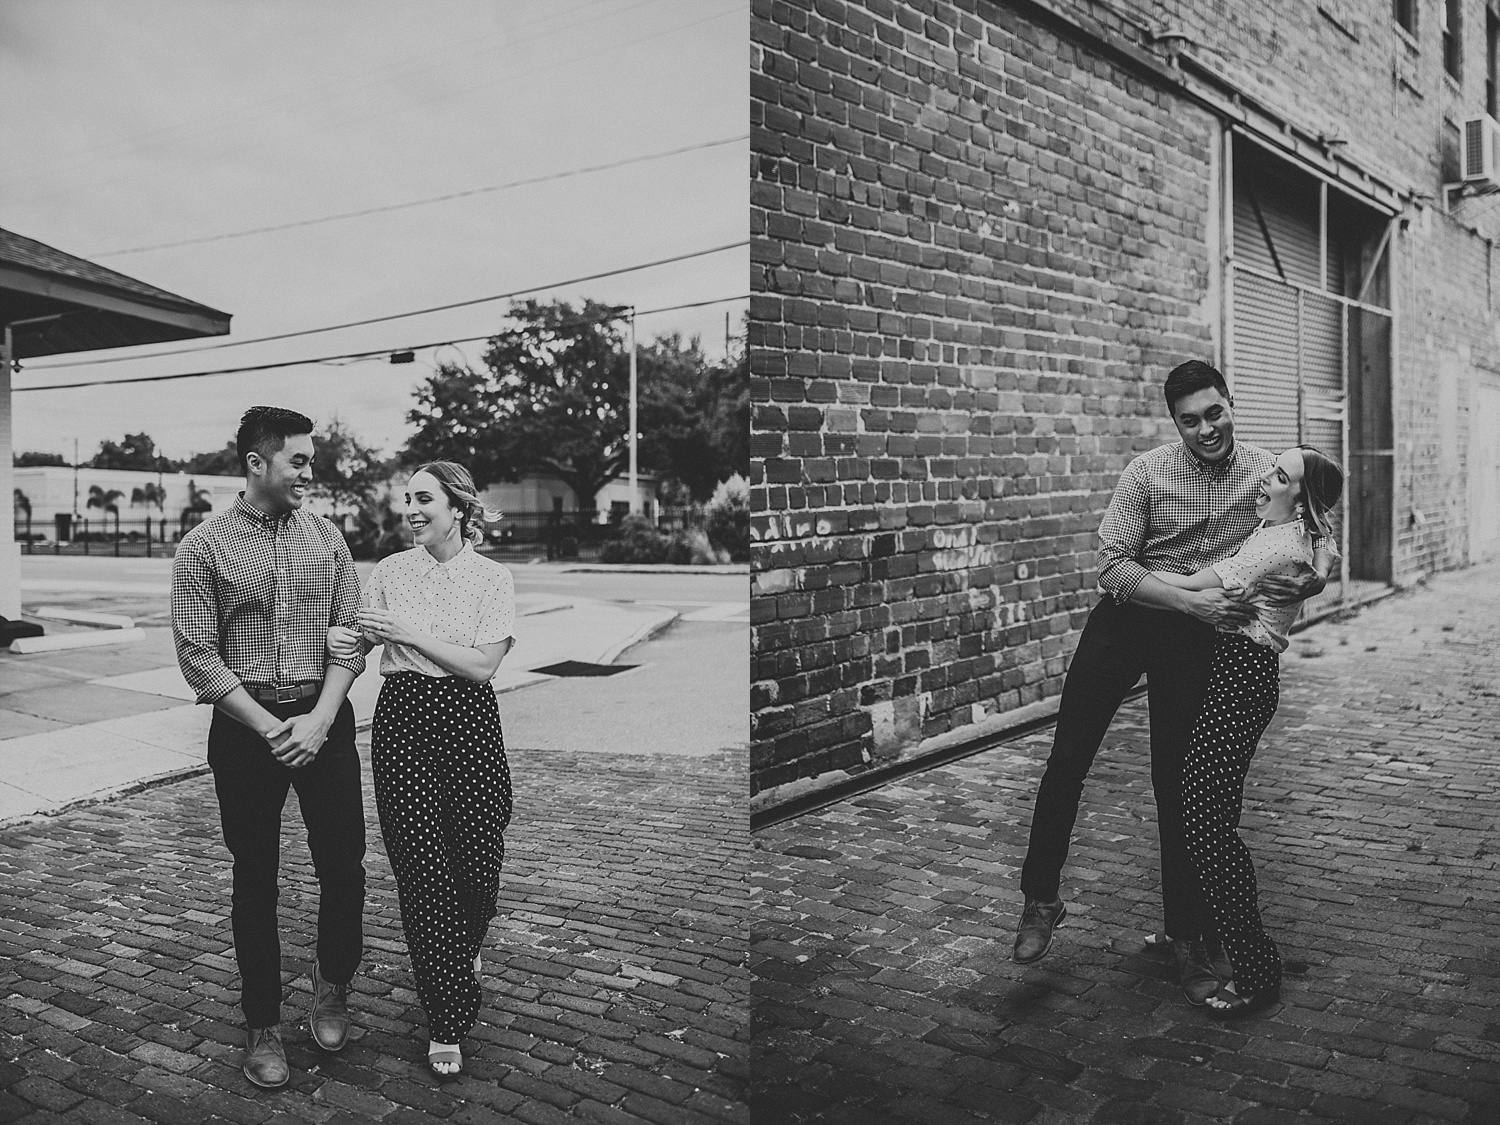 tampa heights engagement session, tampa heights engagement photos, fancy free engagement session, cavu tampa photos, tampa engagement photo ideas, tampa engagement photographer, tampa wedding photographer, Ashley izquierdo, tampa wedding photographers, Tampa wedding photos, tampa hipster engagement sessions, best tampa photographers